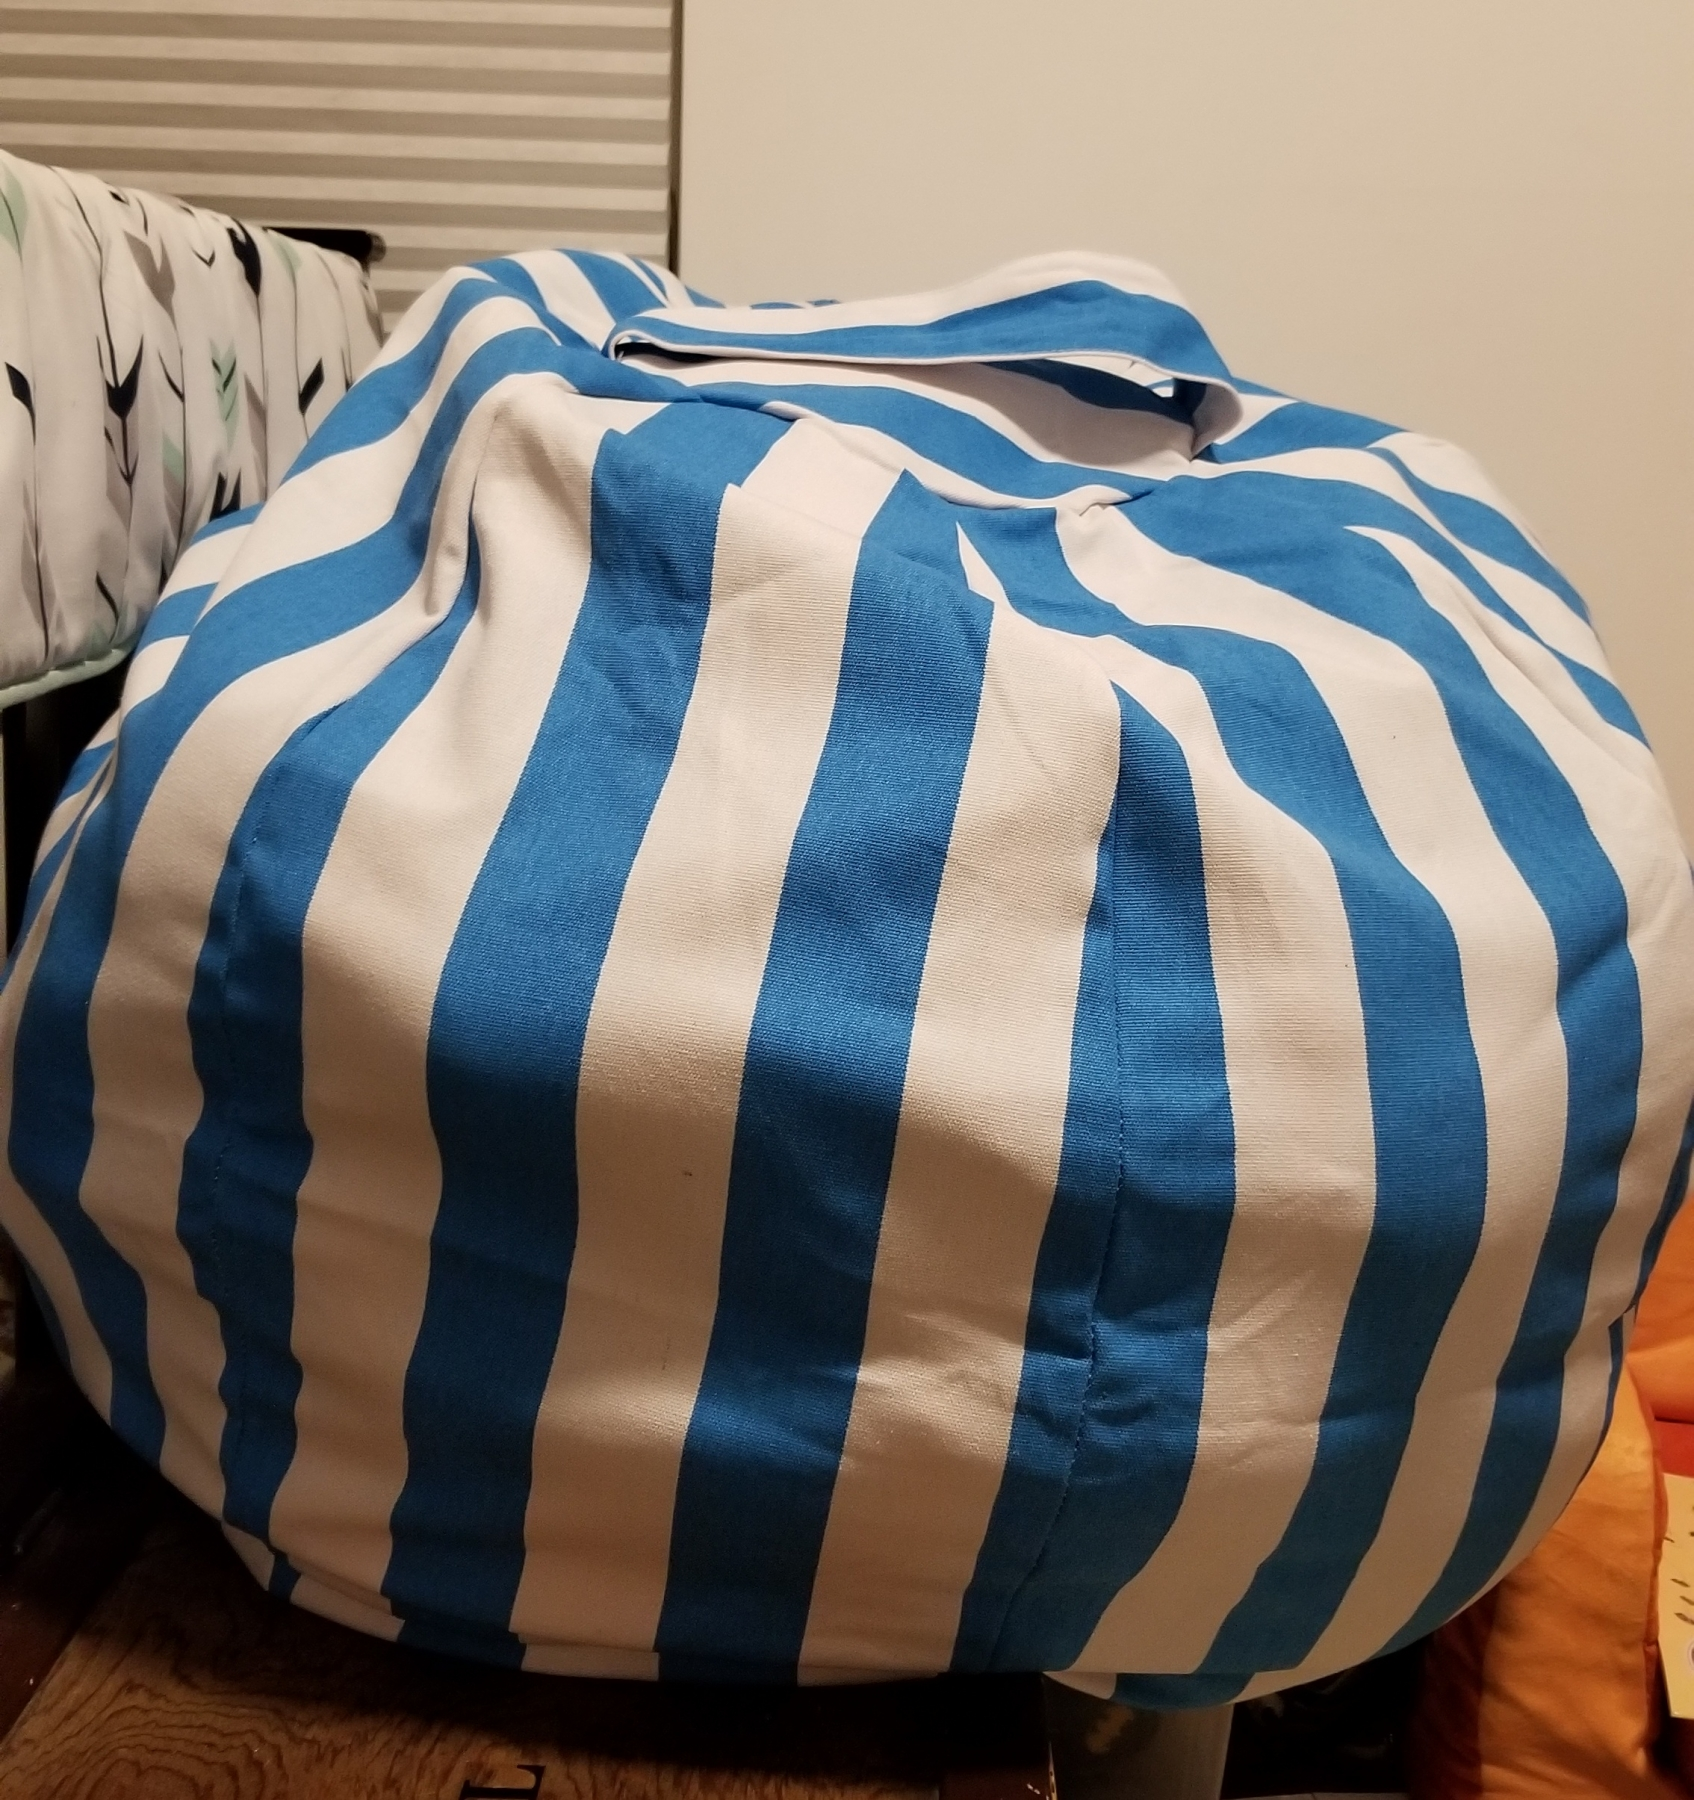 Storage bean bag